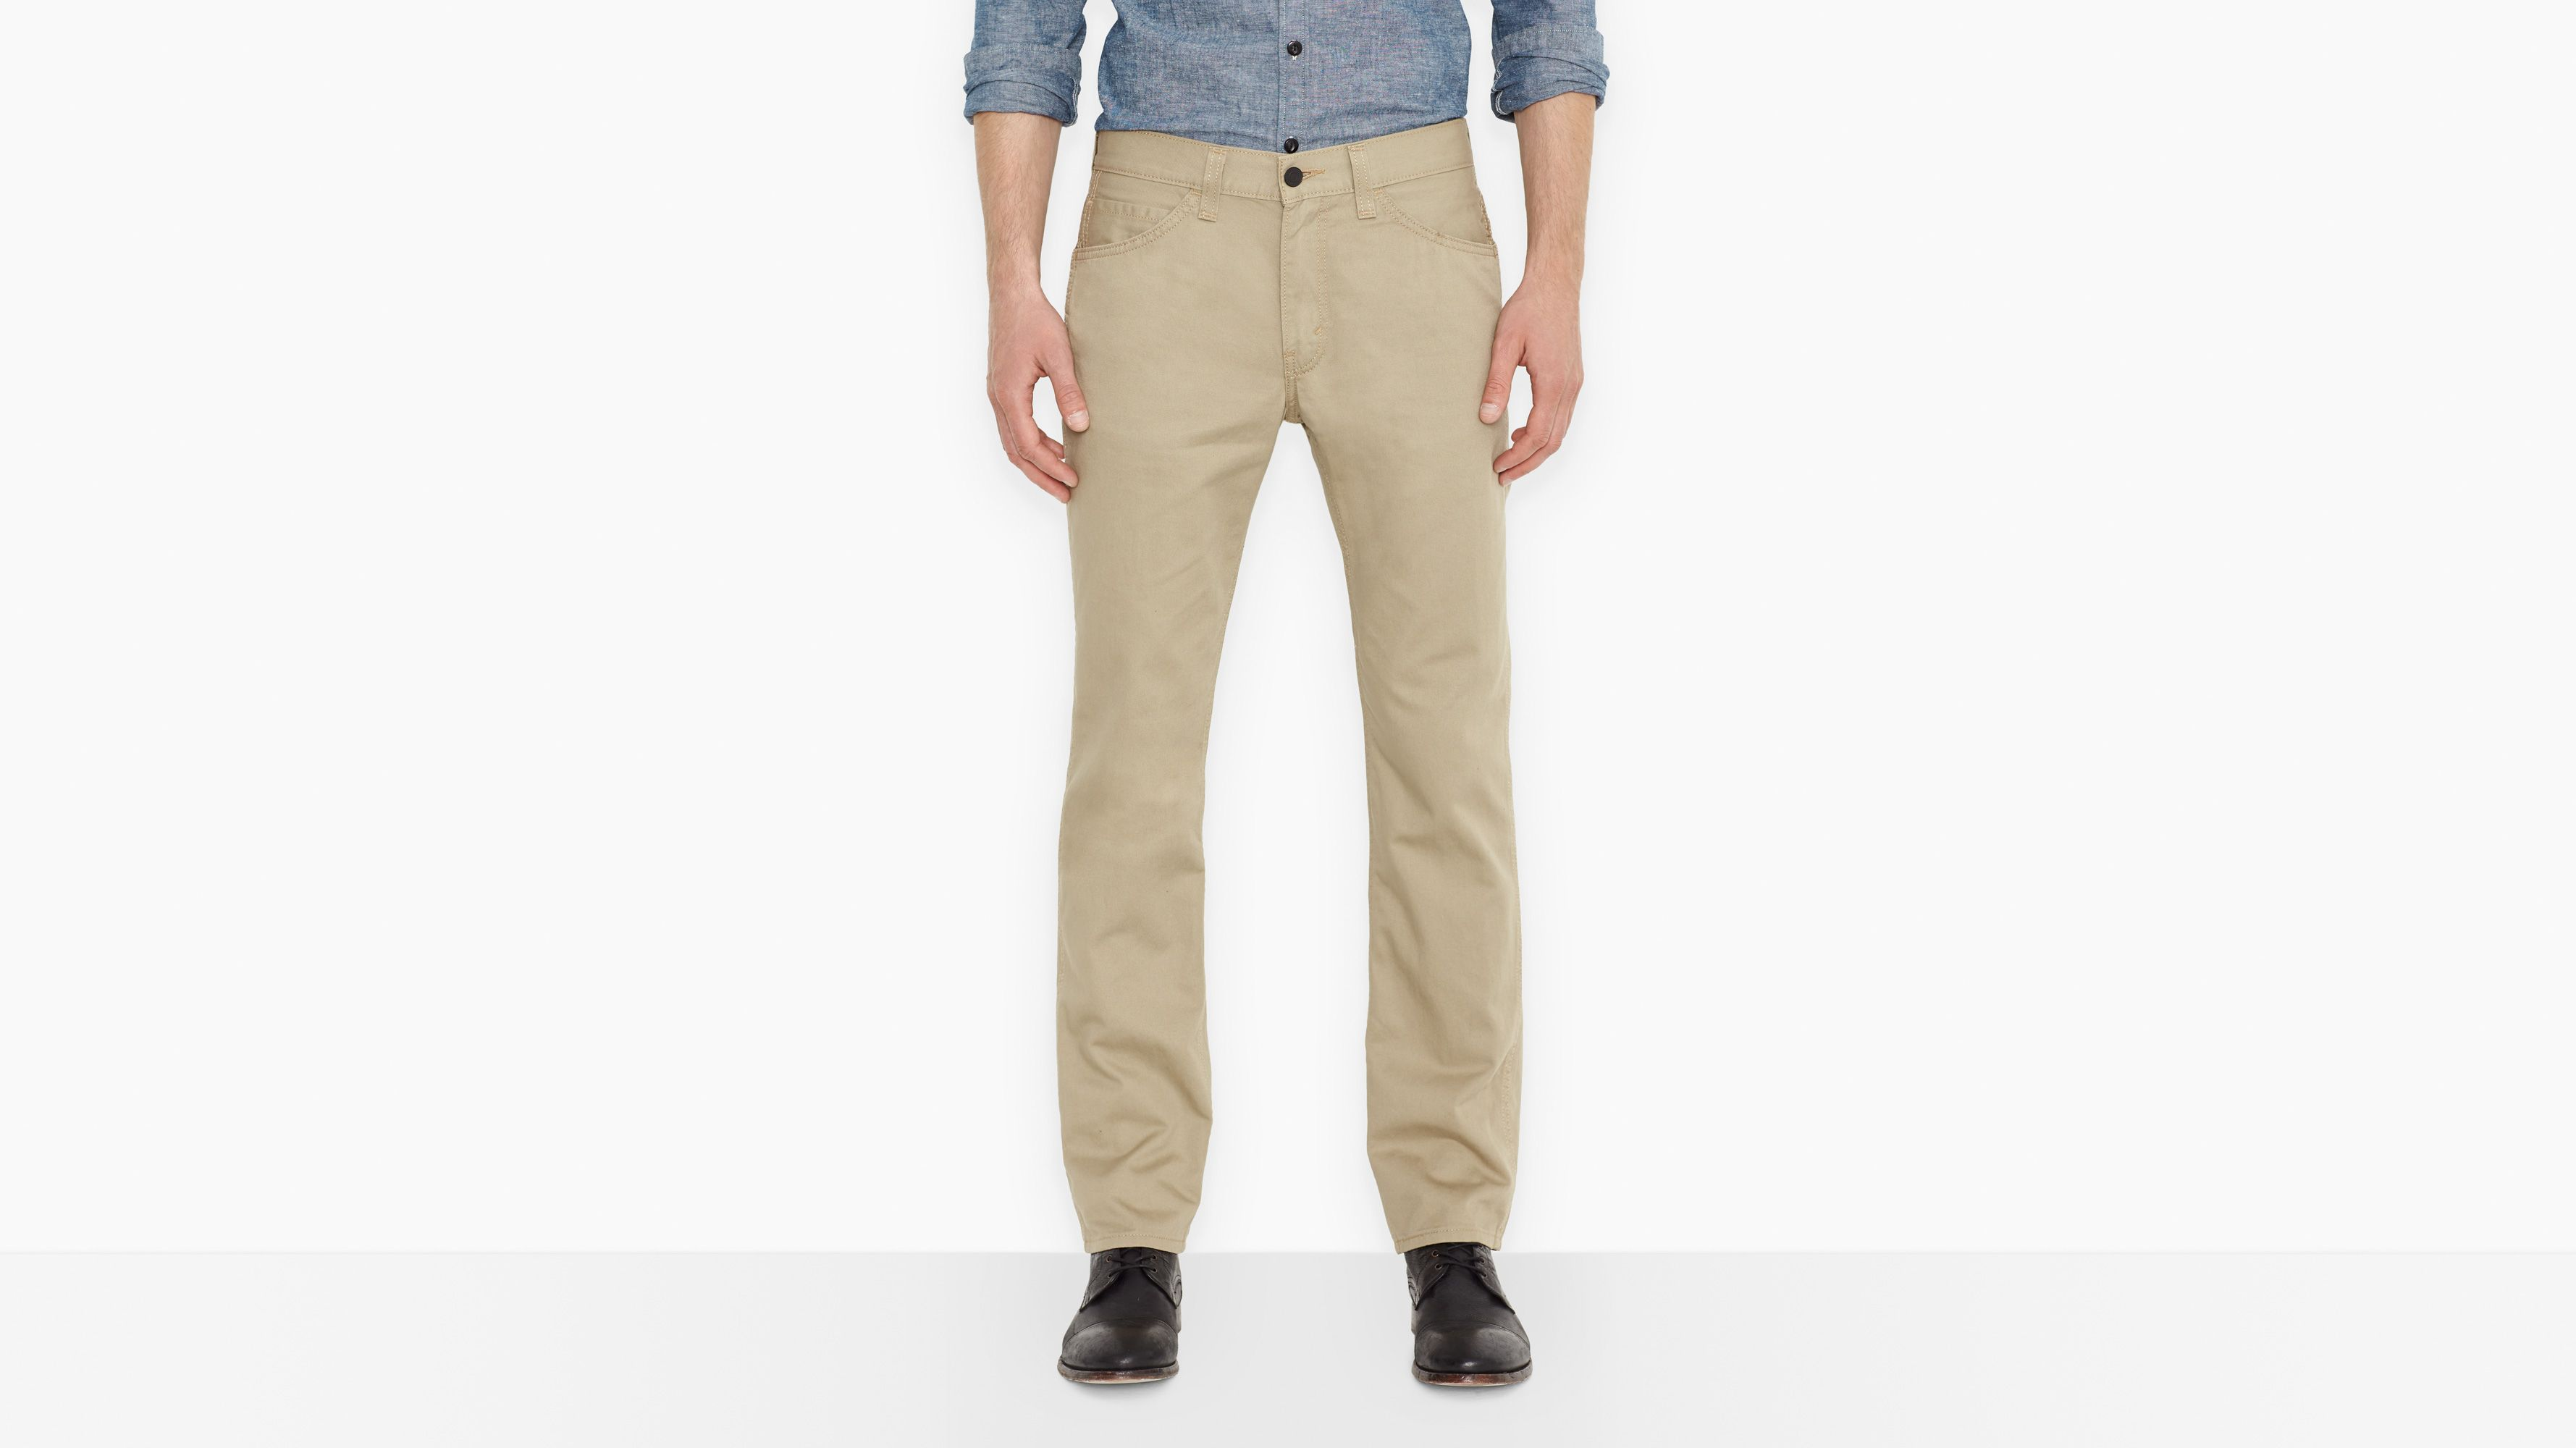 511™ Slim Fit Line 8 Pants - Sand